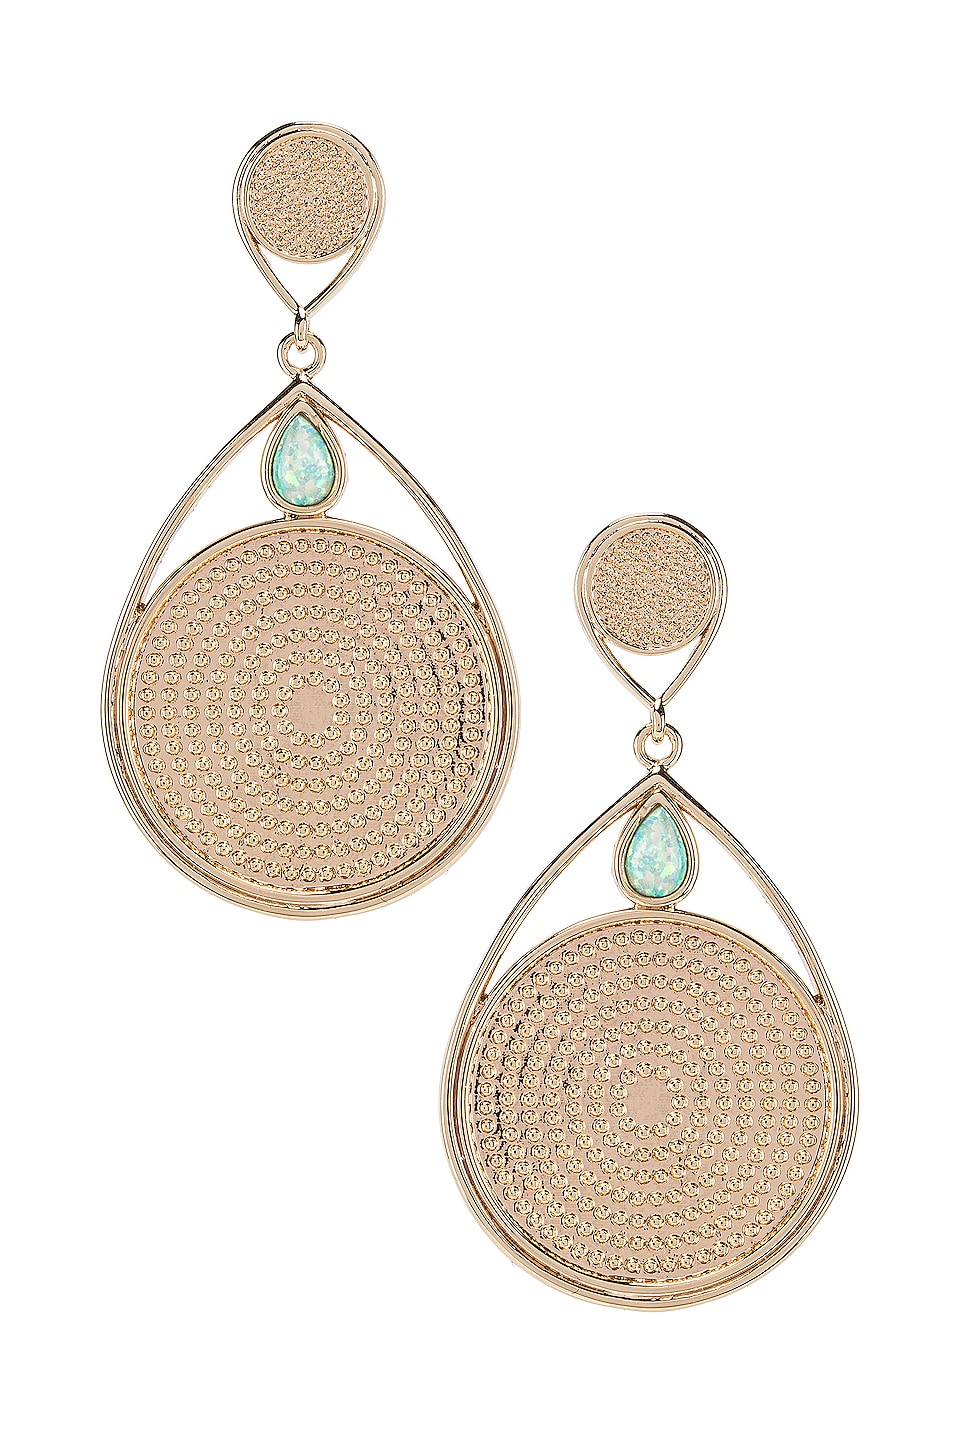 Elizabeth Stone Dangle Earrings in Gold & Aqua Opal